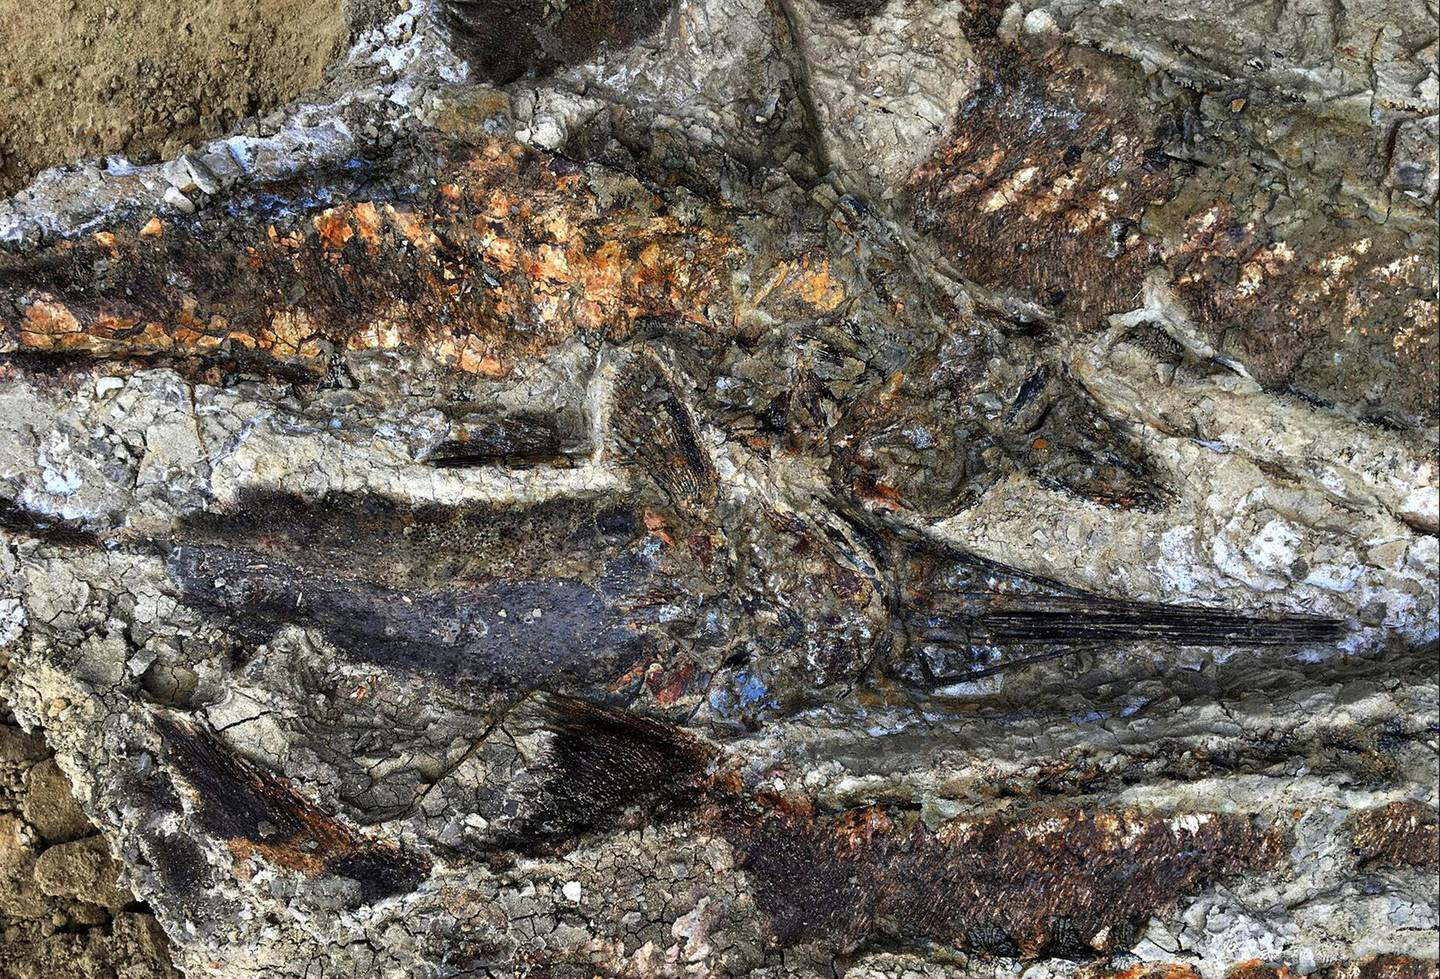 """This handout photo obtained March 30, 2019 courtesy the University of Kansas shows a partially exposed, perfectly preserved 66-million-year-old fish fossil uncovered by Robert DePalma and his colleagues. - The scientists have discovered the fossilized remains of a mass of creatures that died minutes after a huge asteroid slammed into the Earth 66 million years ago, sealing the fate of the dinosaurs. In a paper to be published April 1, 2019, a team of Kansas University paleontologists say they found a """"mother lode of exquisitely preserved animal and fish fossils"""" in what is now North Dakota. The asteroid's impact in what is now Mexico was the most cataclysmic event ever known to befall Earth, eradicating 75 percent of the planet's animal and plant species, extinguishing the dinosaurs and paving the way for the rise of humans. (Photo by Robert DePalma / Kansas University / AFP) / XGTY / RESTRICTED TO EDITORIAL USE - MANDATORY CREDIT """"AFP PHOTO / University of Kansas"""" - NO MARKETING NO ADVERTISING CAMPAIGNS - DISTRIBUTED AS A SERVICE TO CLIENTS --- TO GO WITH AFP STORY :  """"Fossil 'mother lode"""" records Earth-shaking asteroid's impact: study."""""""